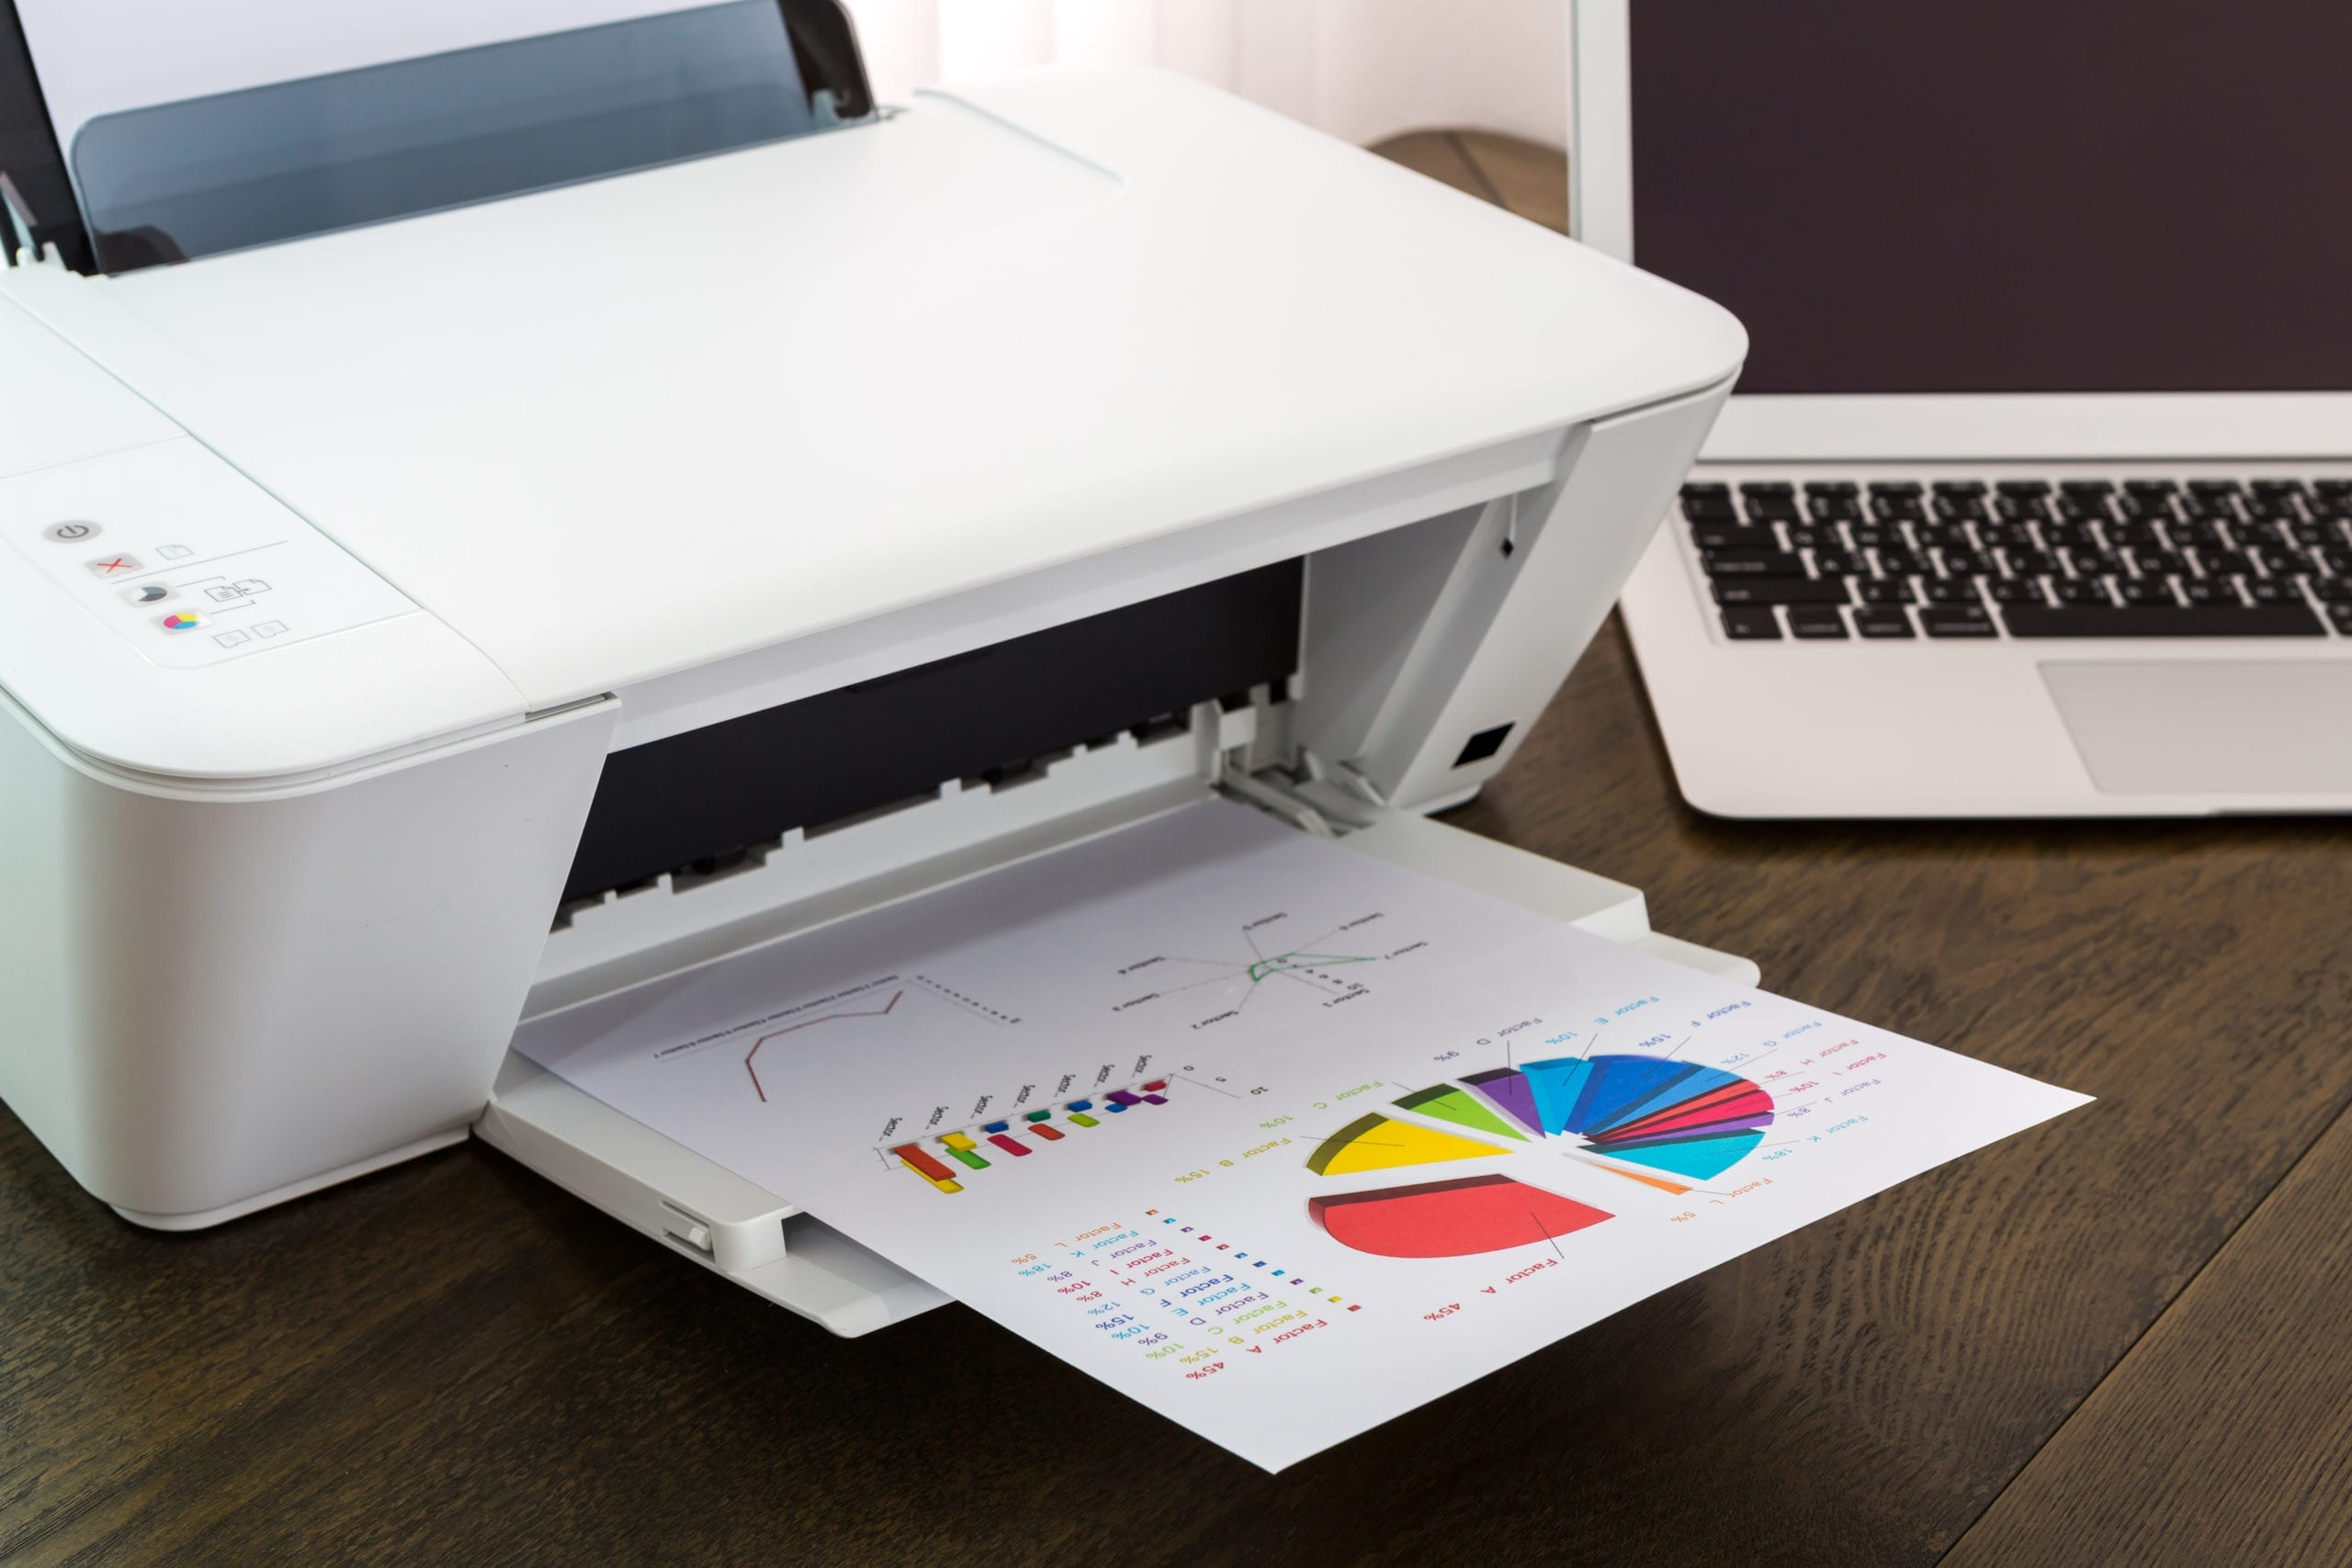 A Printers ability to print out colors is shown with a freshly printed color paper on the printer tray.